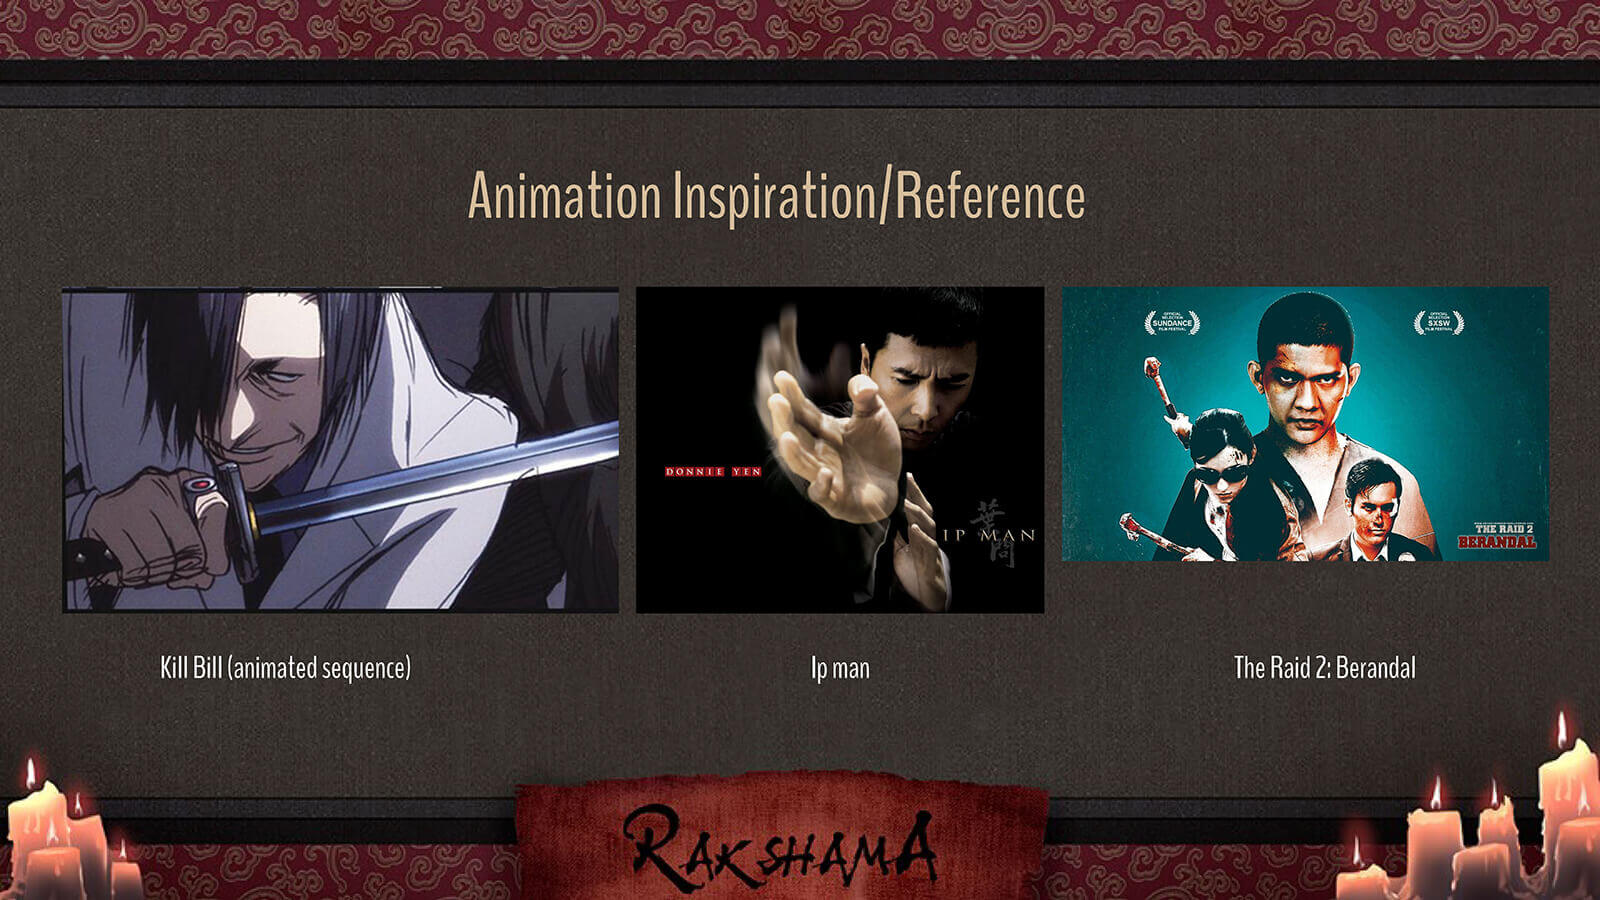 Animation Inspiration slide for the film Rakshama, including images of Kill Bill, Ip Man, and The Raid 2